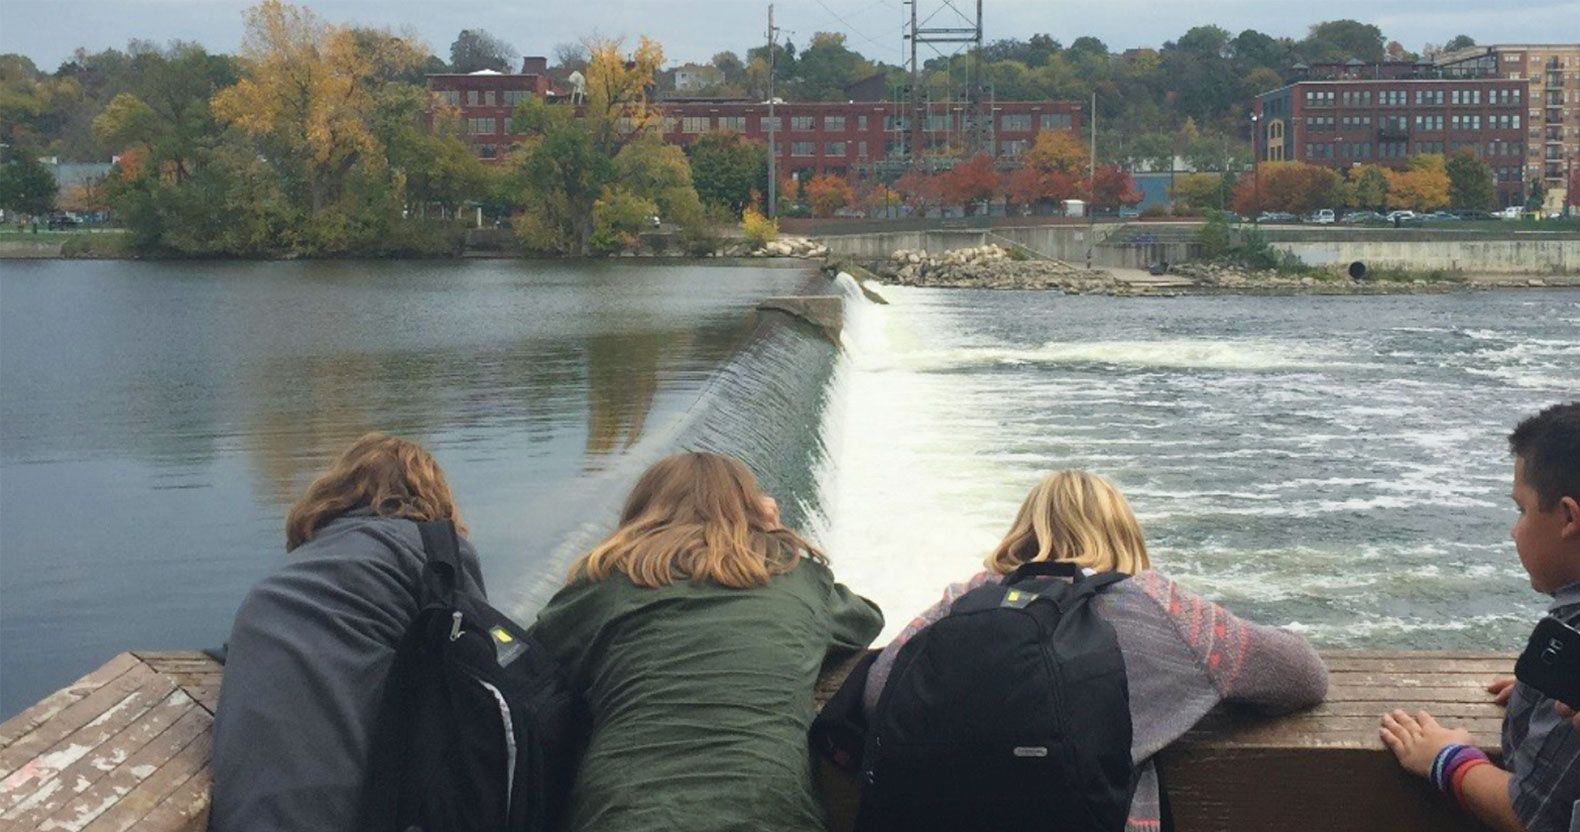 Museum School students look out from a museum balcony over the Grand River, where they learn about freshwater ecosystems and partake in river restoration work.